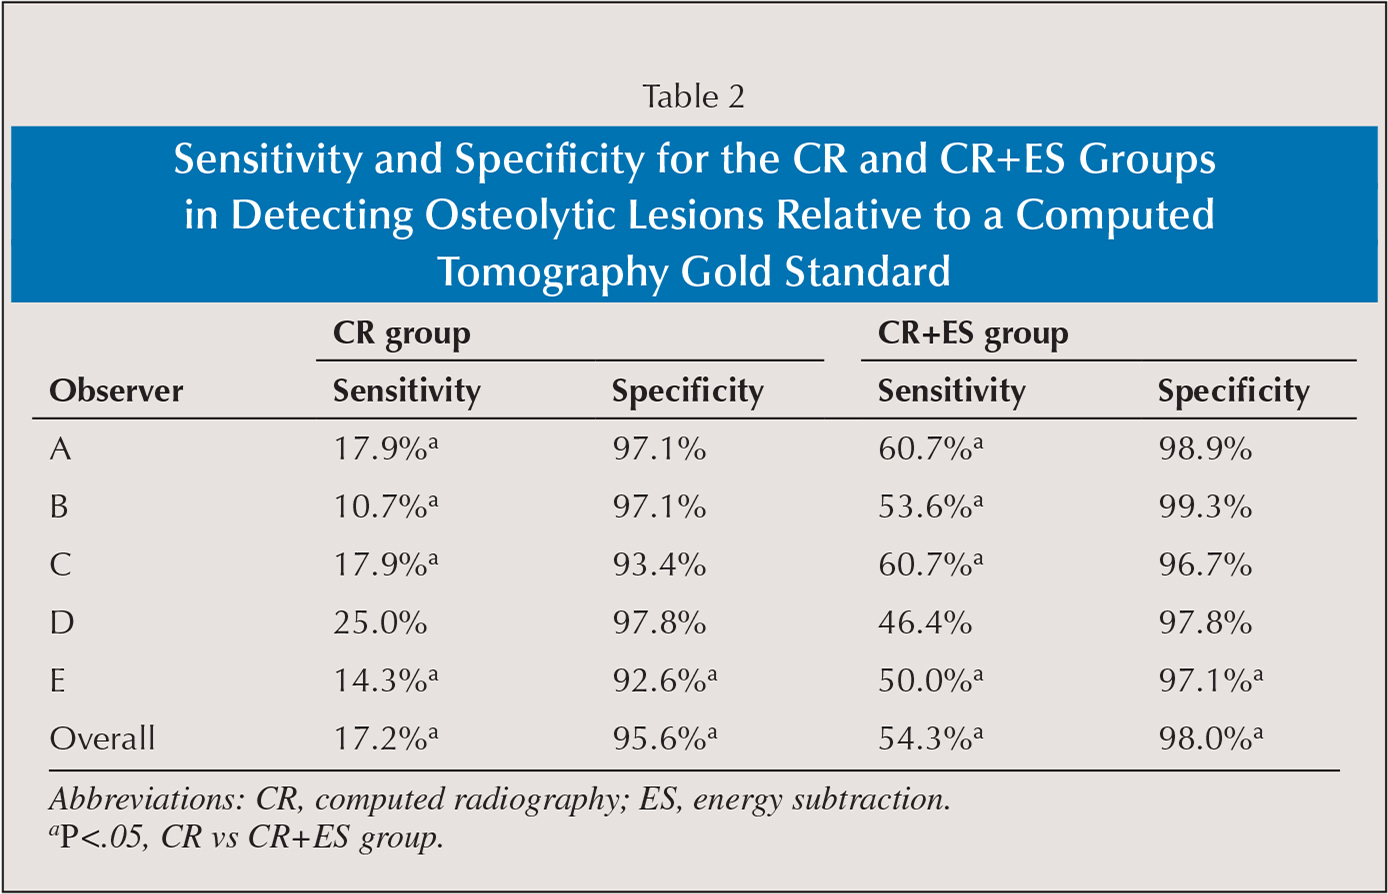 Sensitivity and Specificity for the CR and CR+ES Groups in Detecting Osteolytic Lesions Relative to a Computed Tomography Gold Standard